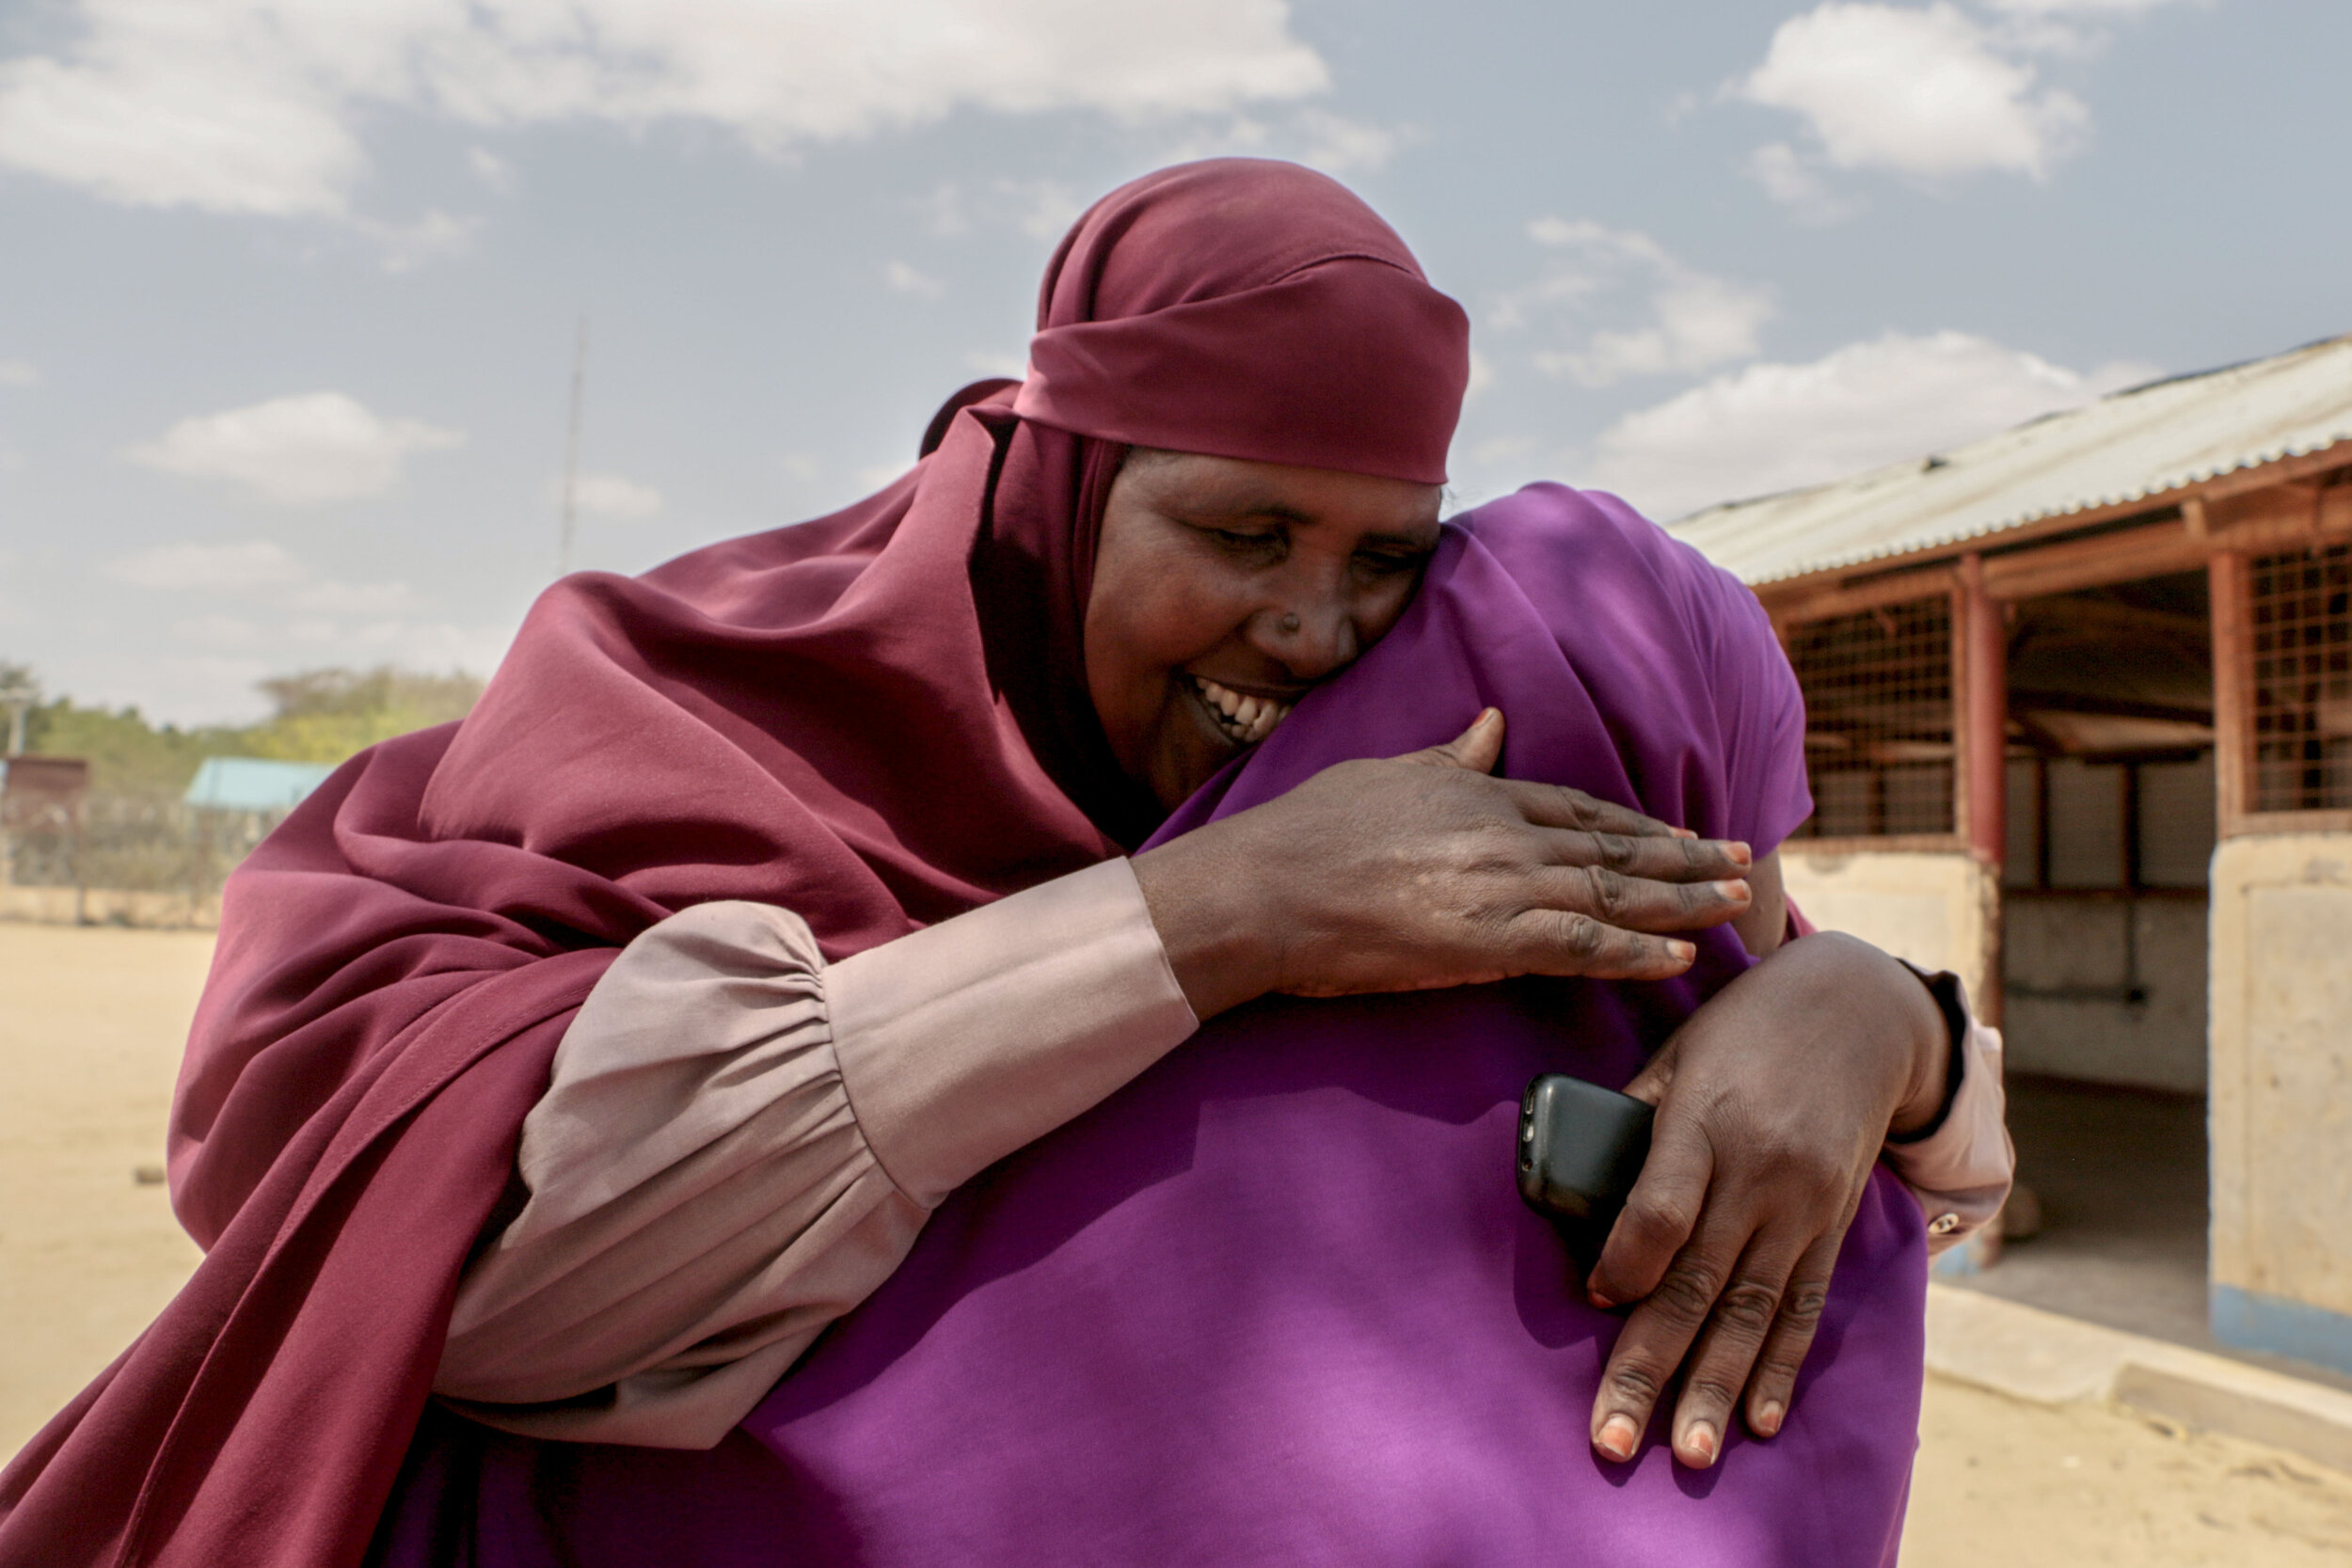 """Ruqia Osman embraces Hamdi Kosar Aug. 19 at the Dagahaley Refugee Camp in Dadaab, Kenya. Osman has lived in the camp for around 30 years and went through the resettlement process with Kosar's family nearly a decade ago. Her daughter, who she hasn't seen in 10 years, was resettled to the U.S. and now lives in Willmar. """"I talk to myself because I miss her so much,"""" Osman said to Kosar. """"Seeing you I am able to see my daughter."""""""